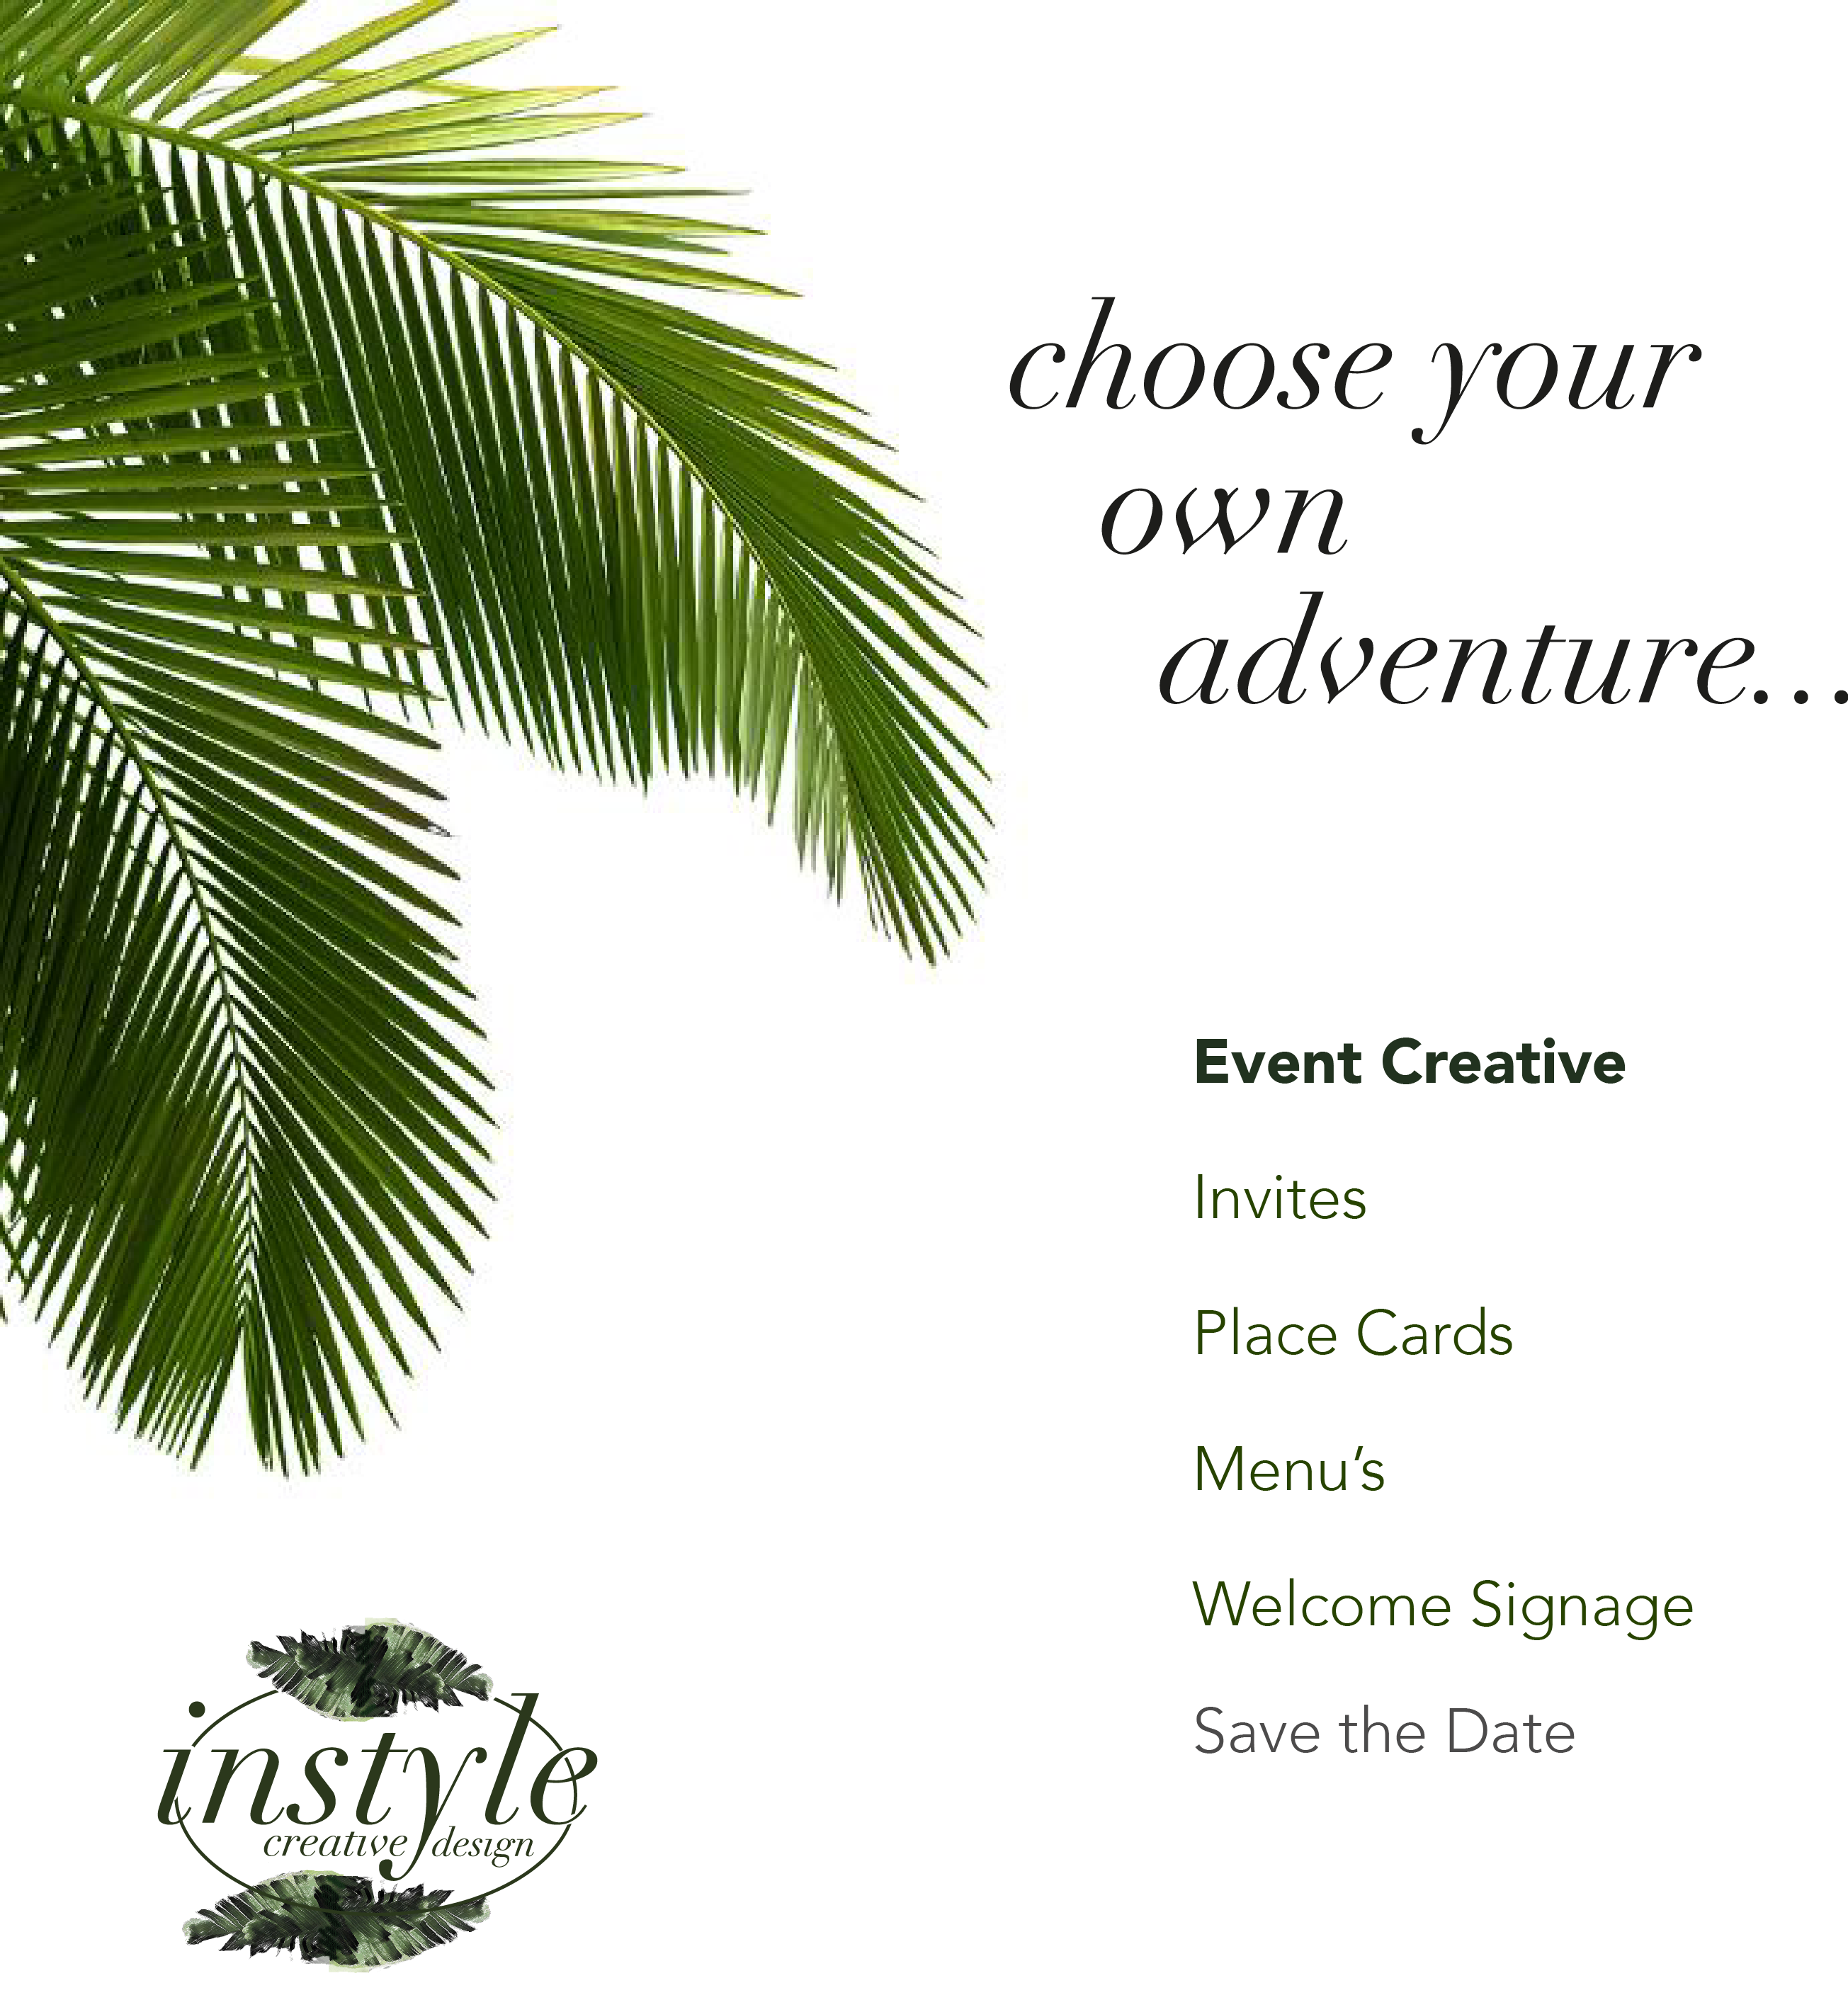 Instyle Creative Design